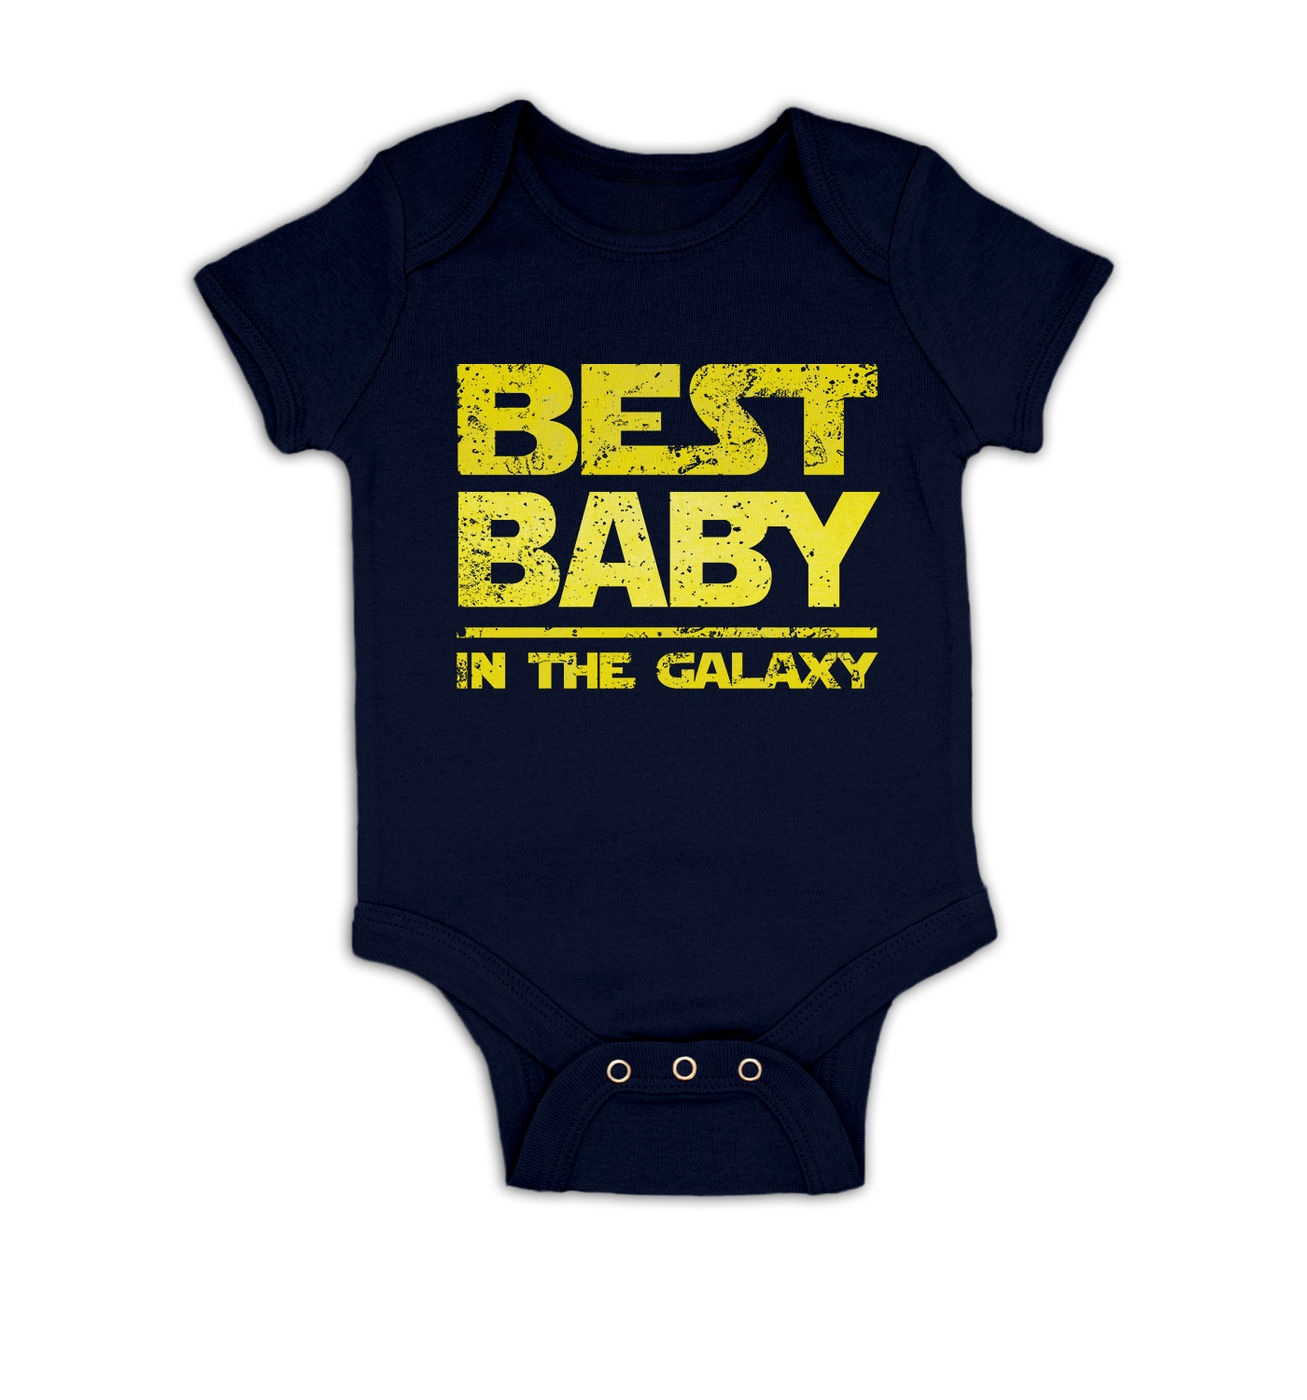 Best Baby In The Galaxy baby grow by Something Geeky